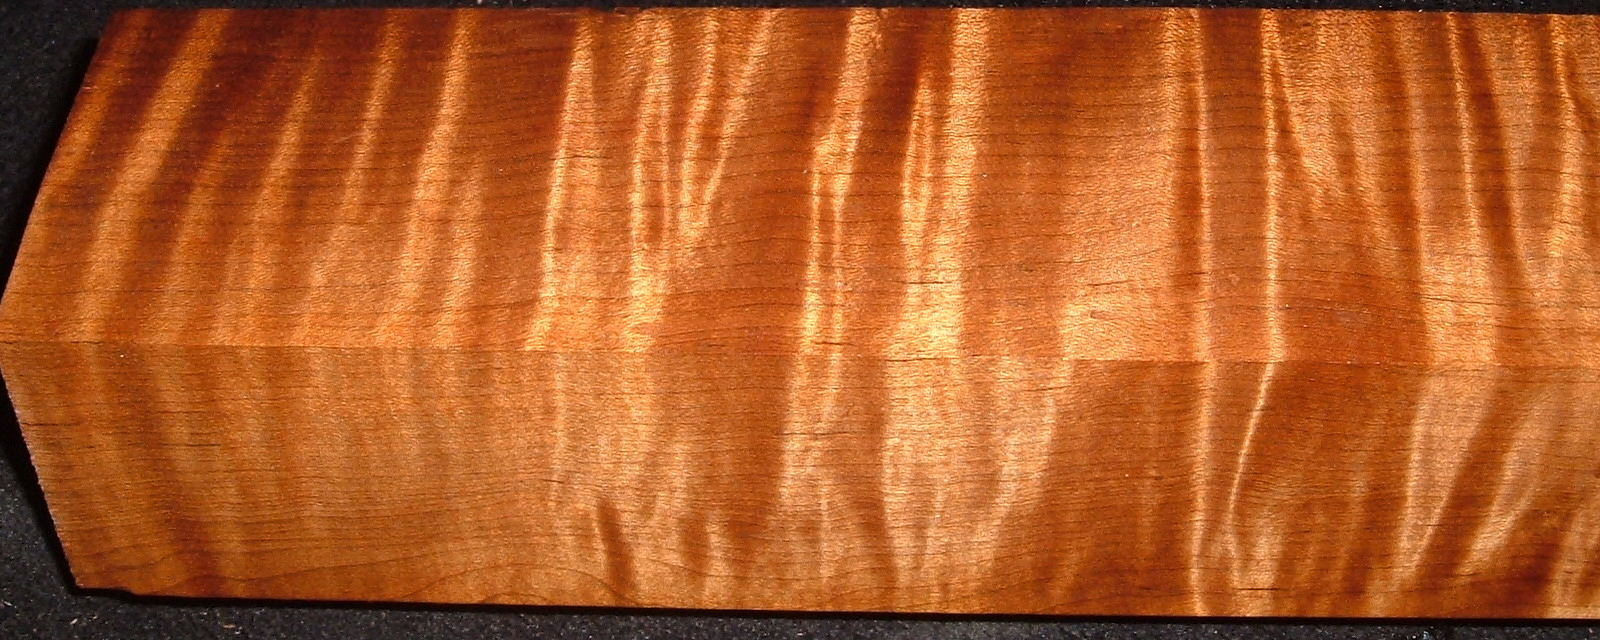 RTB-11, 2-3/16x 2-3/4x21, Torrefied Roasted, Curly Tiger Maple, Turning Block